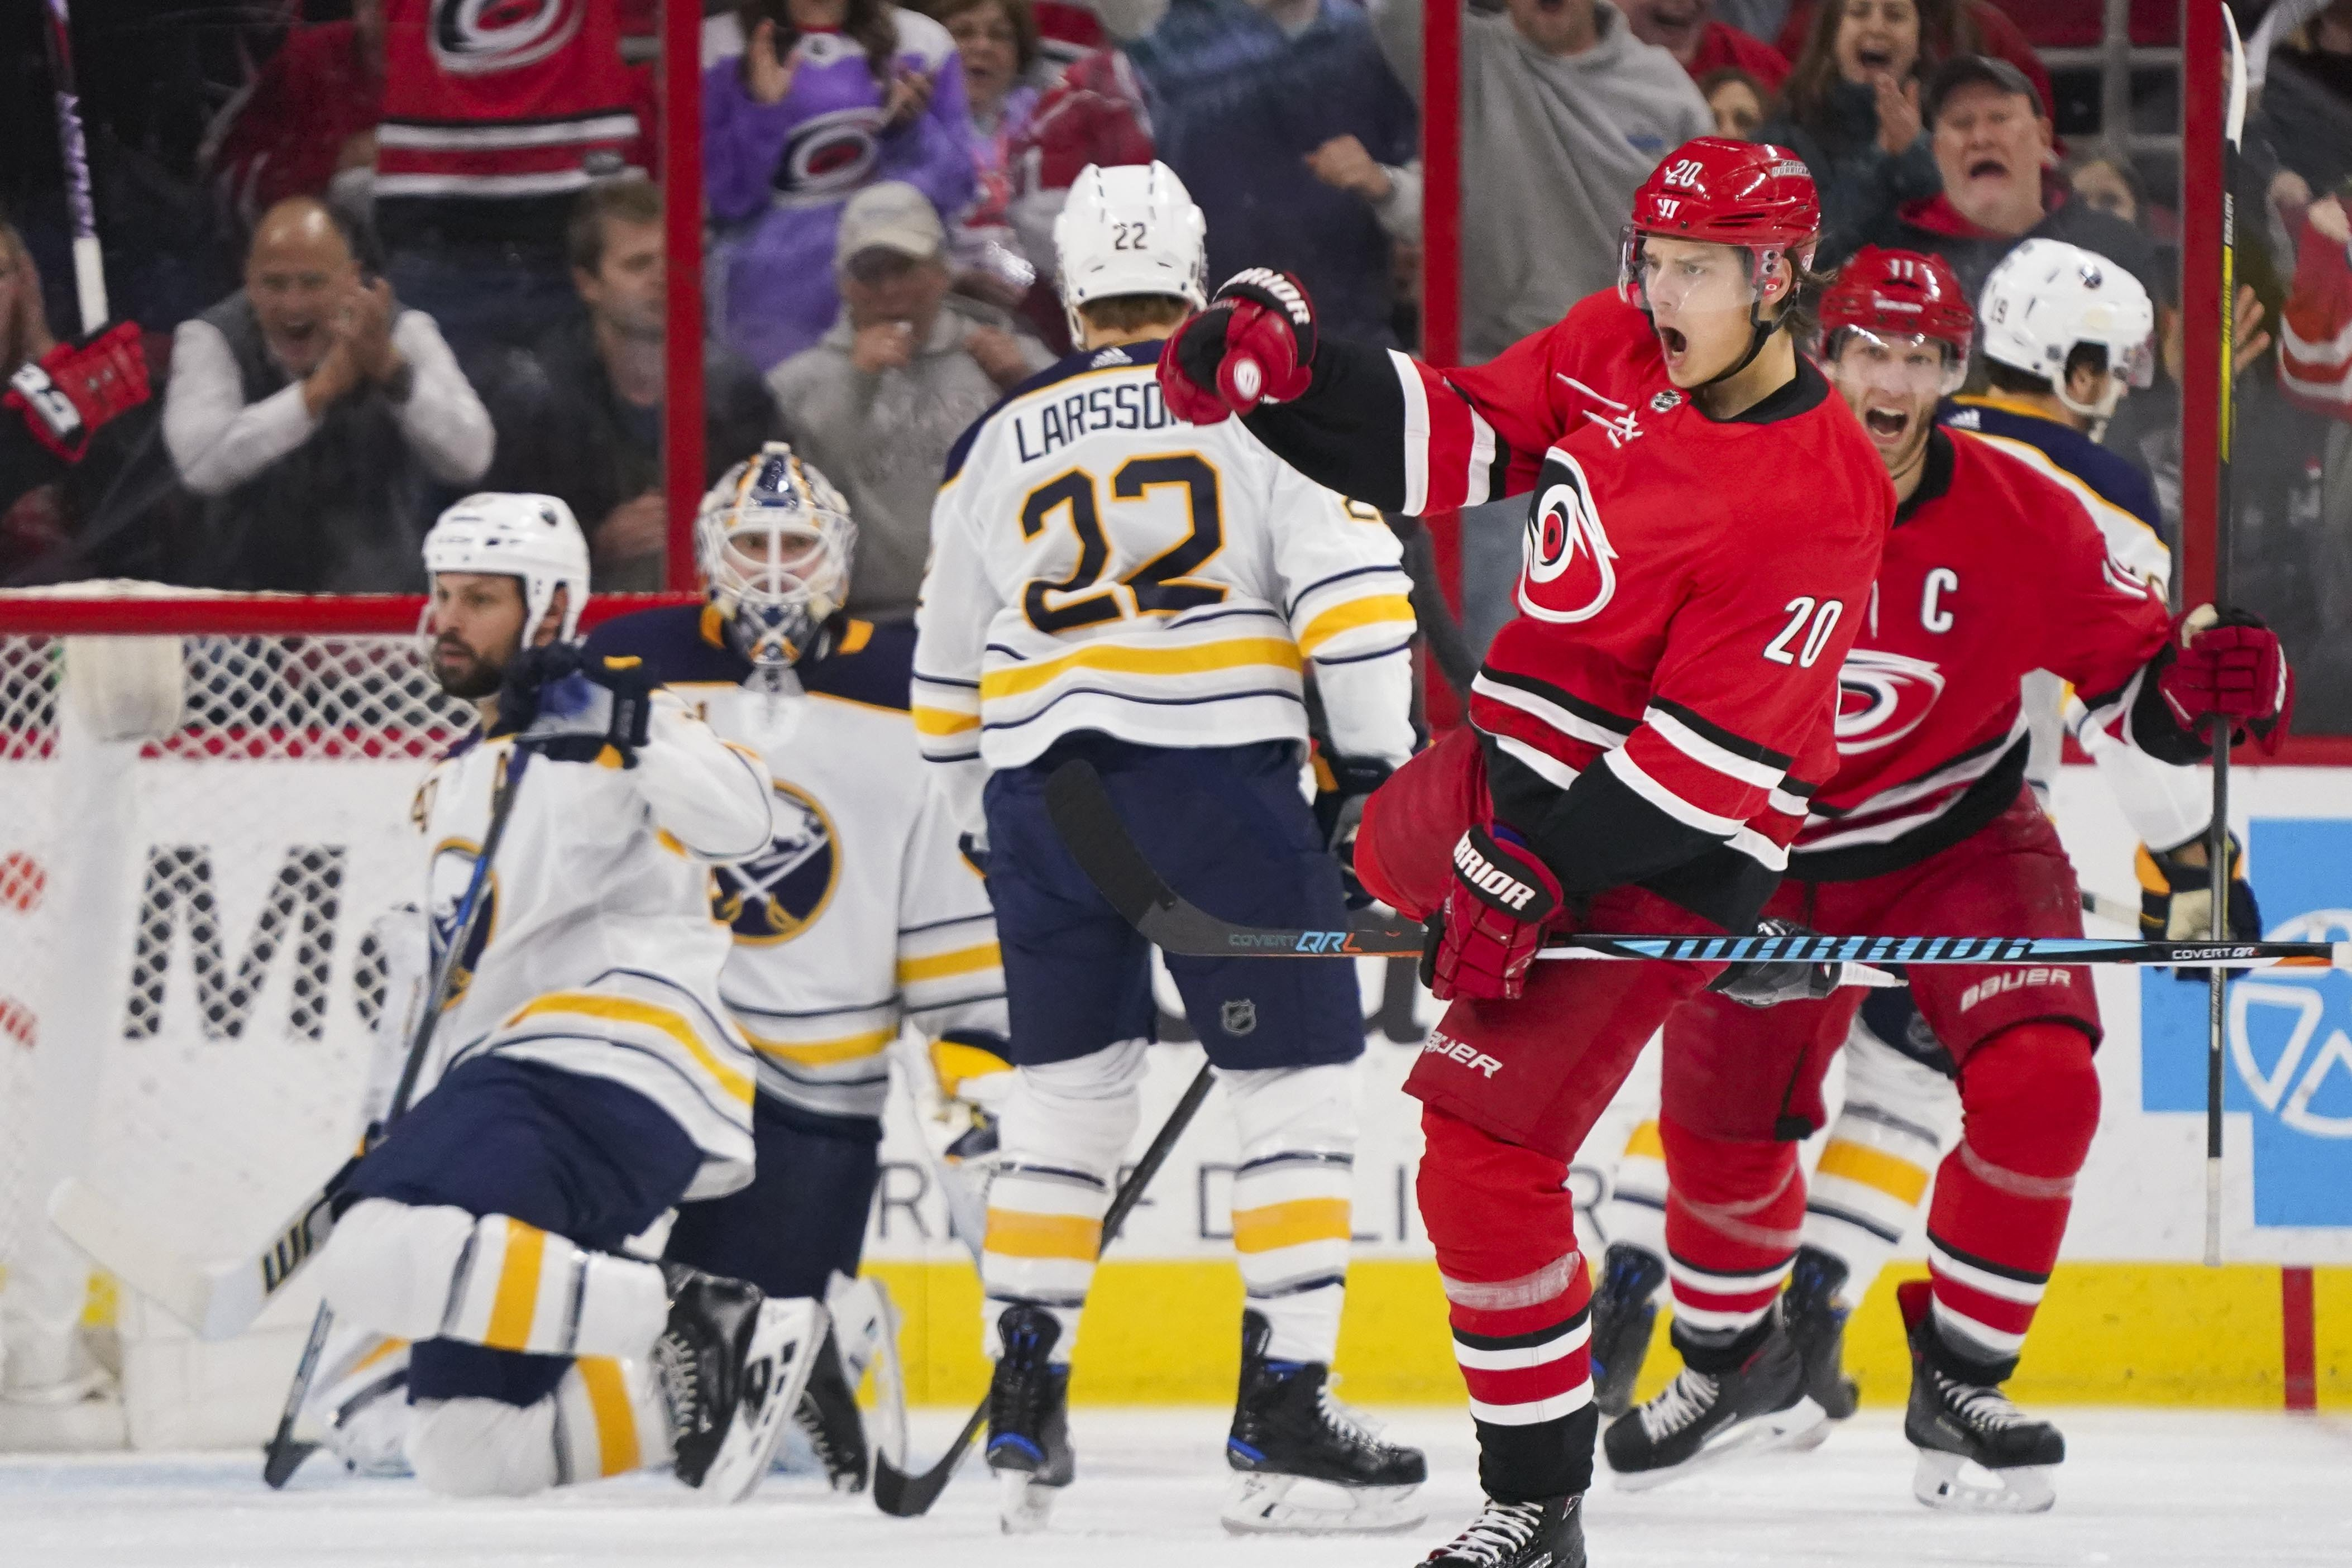 Sabres come up short against Hurricanes